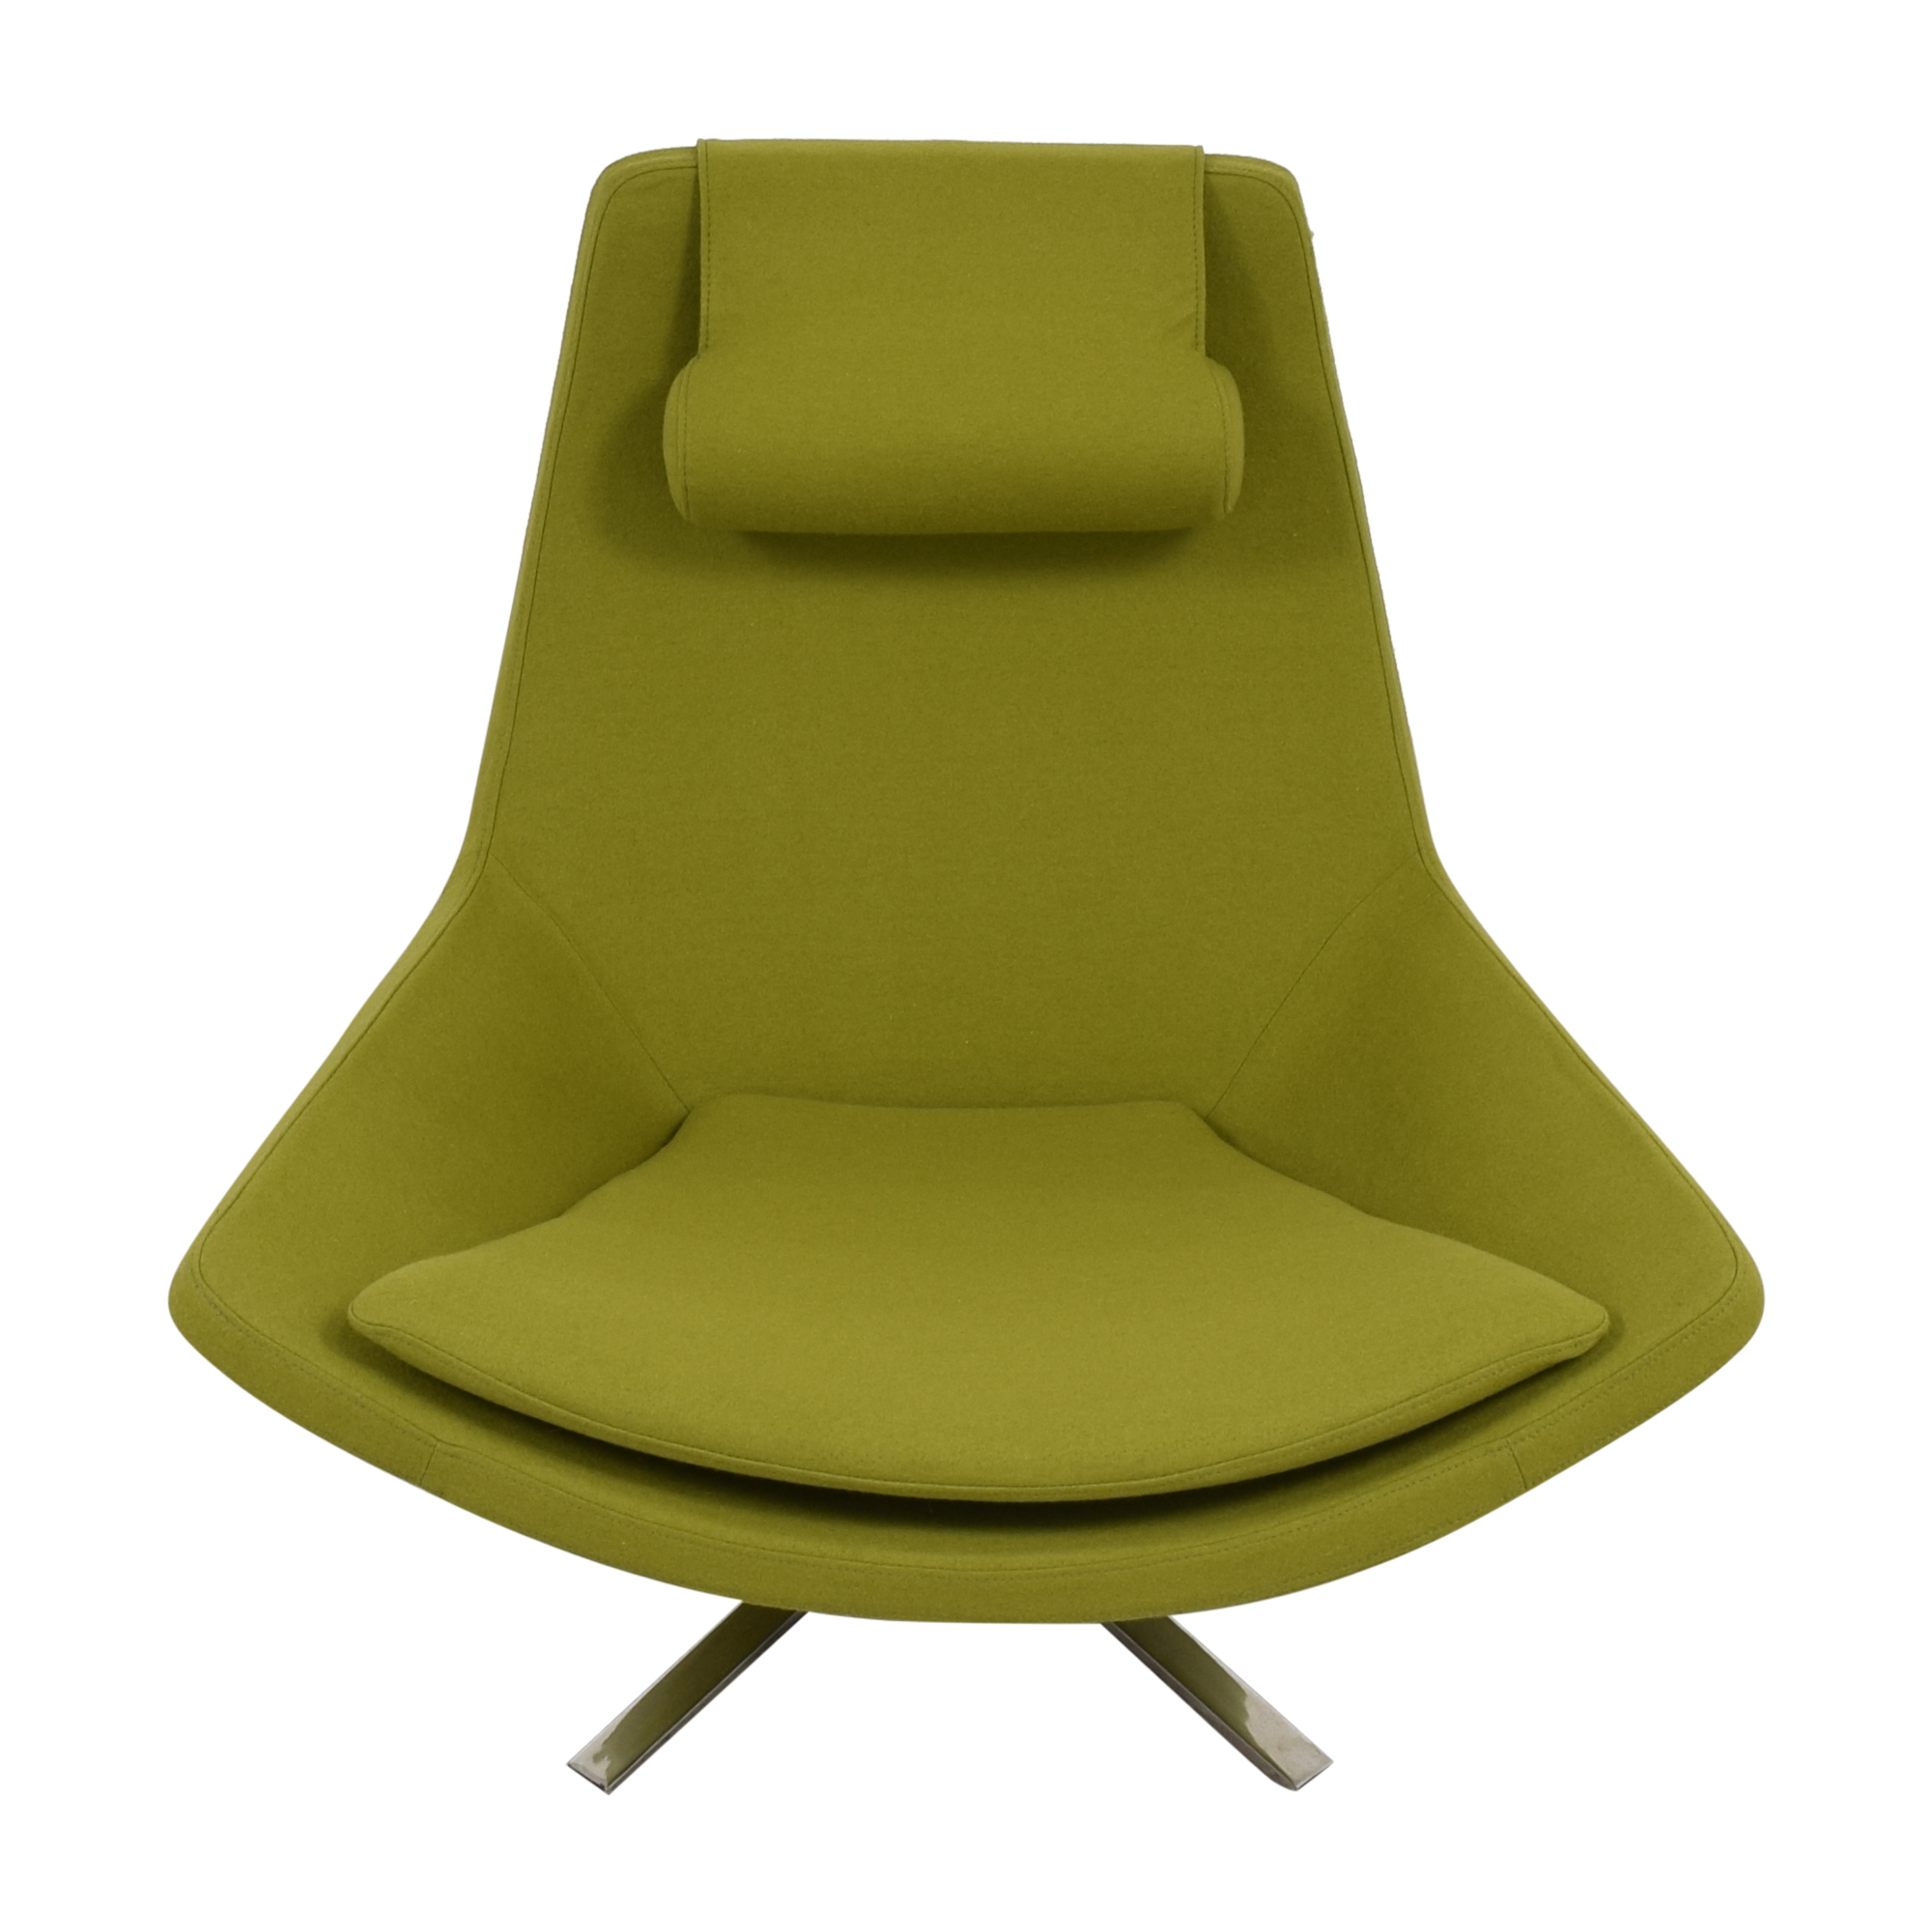 Kardiel Retropolitan Chair / Chairs